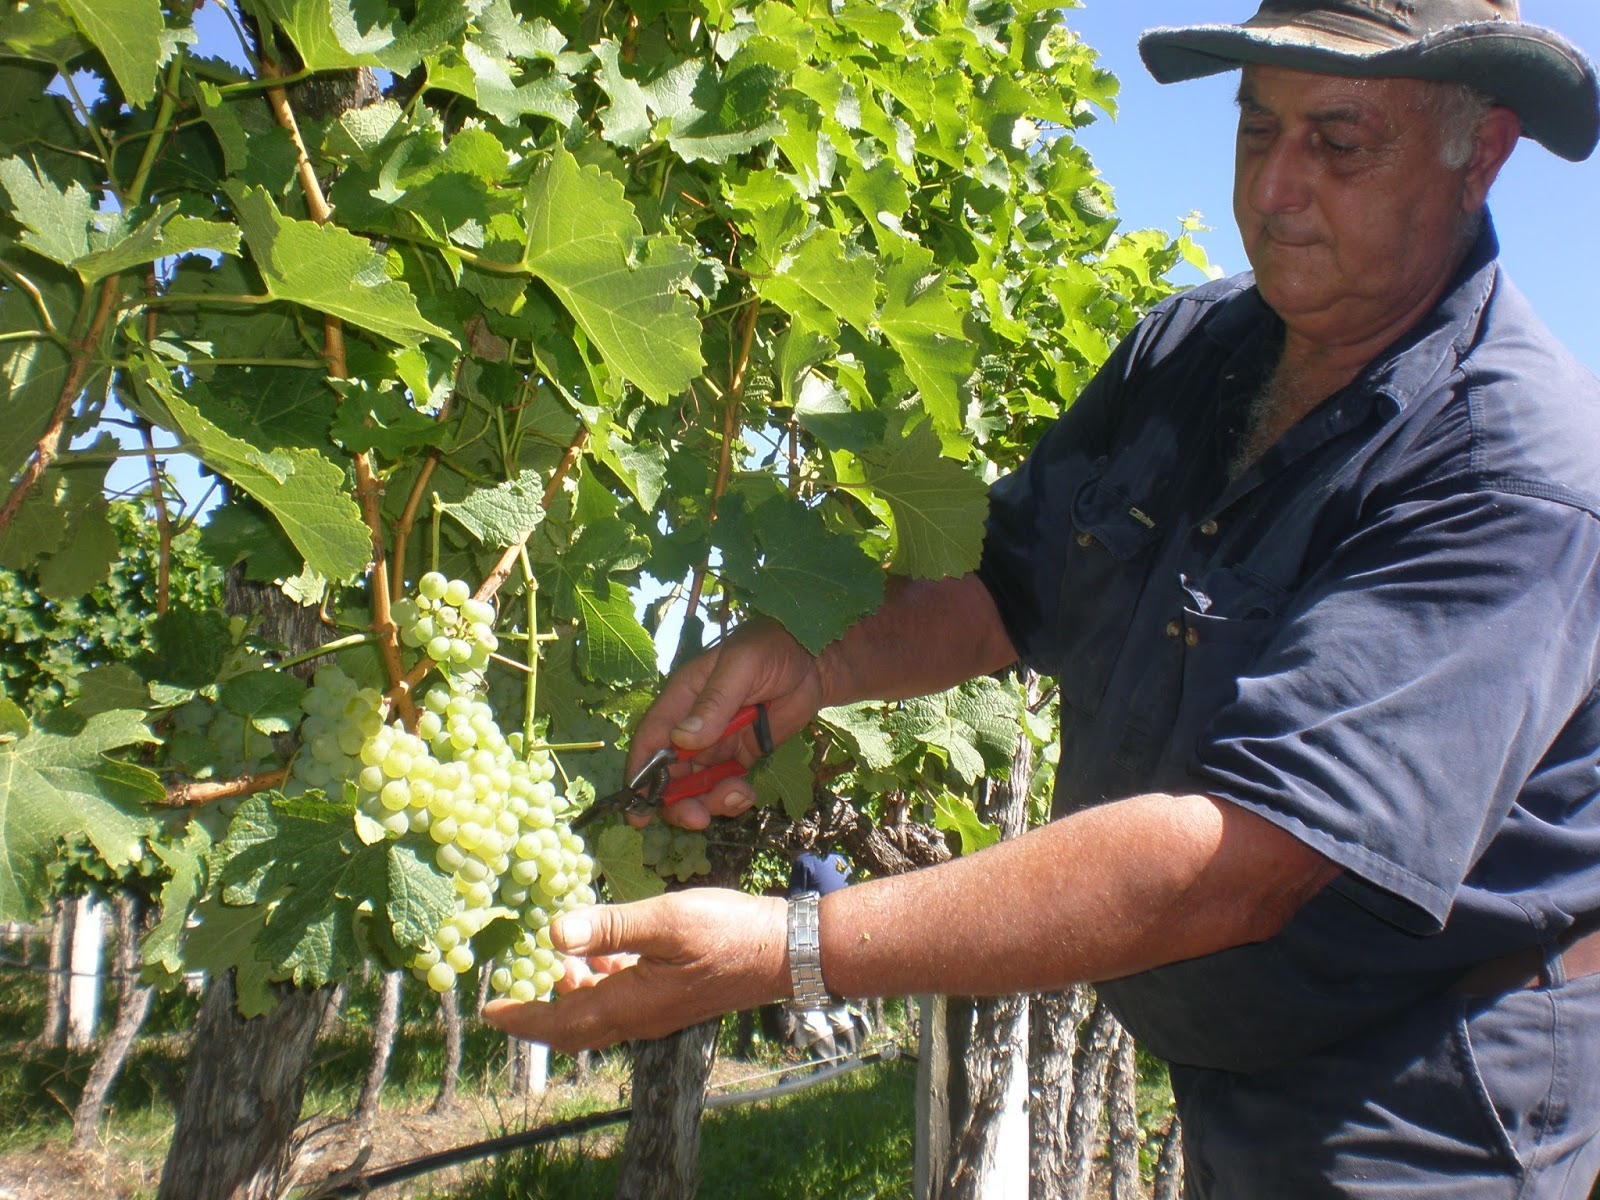 Angelo Puglisi shows off some of his special variety Fiano at Balllandean Estate in the Granite Belt